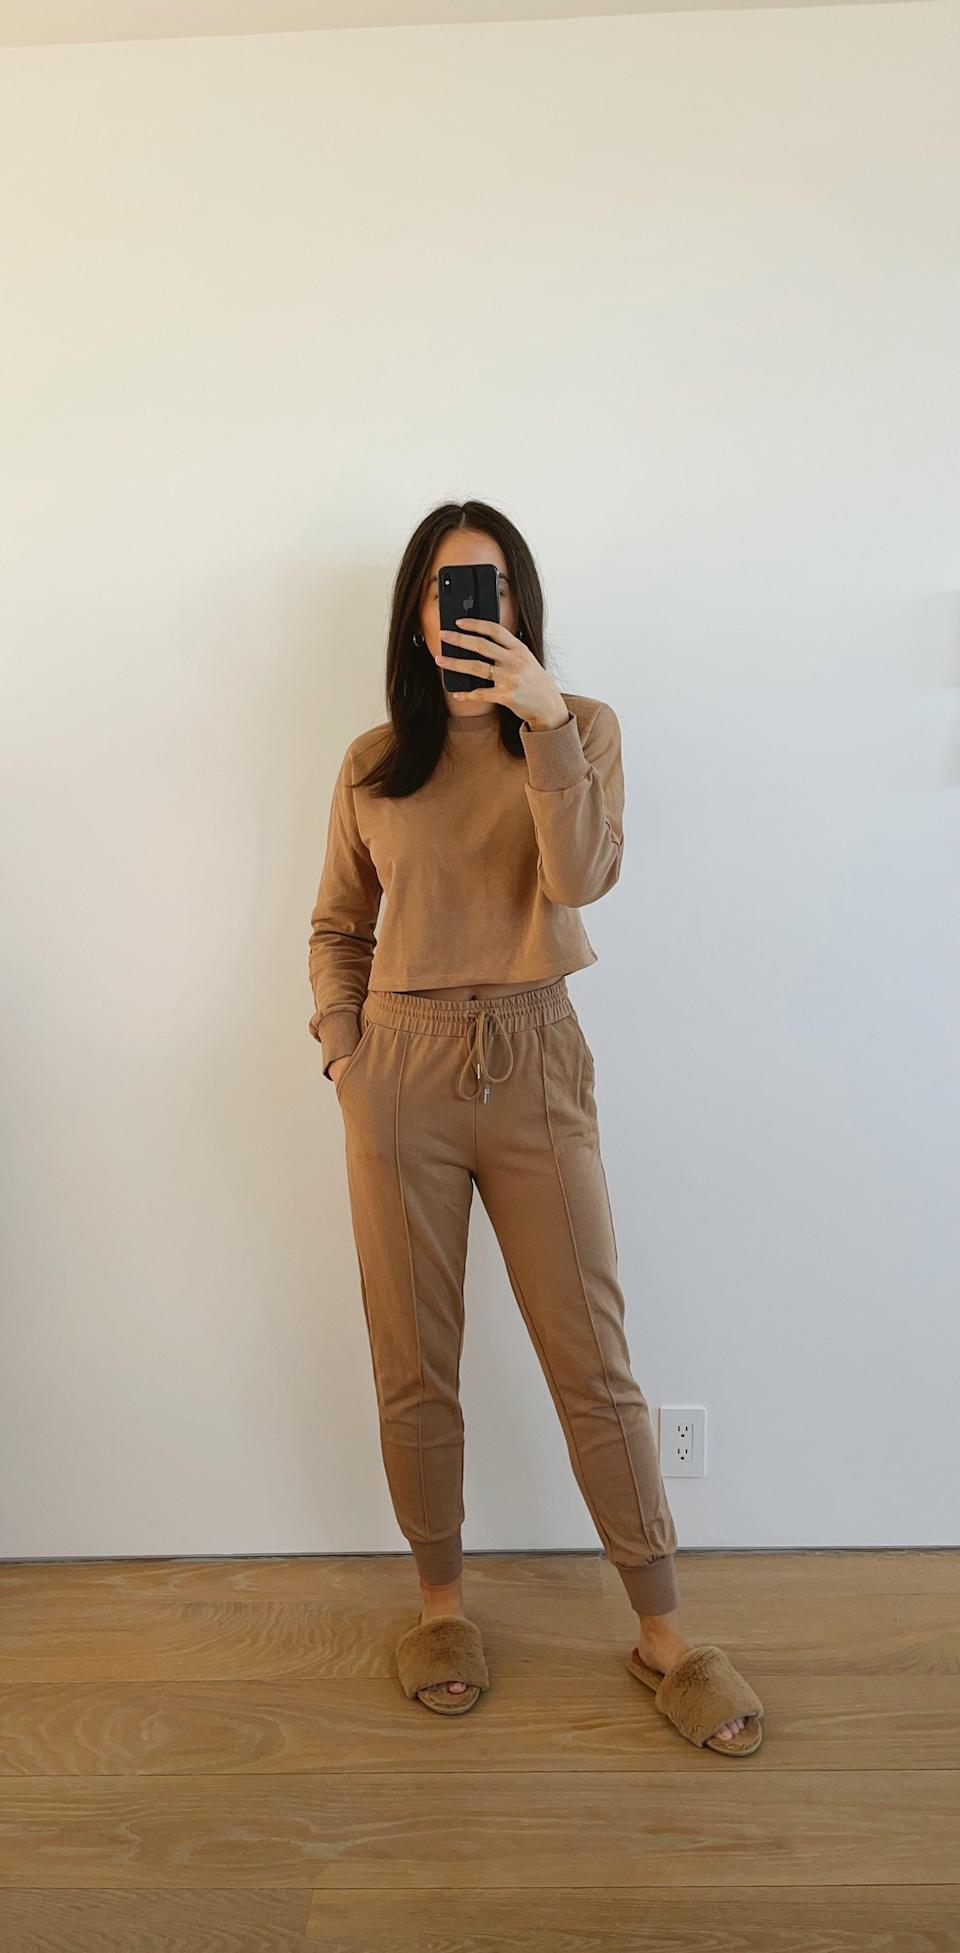 <p>I've always been a huge fan of tan loungewear sets, because I think they look so chic and classy. I've seen tons of tan sets similar to this one online for double, sometimes triple the price. I love to throw on this <span>Zesica Set</span> ($40) no matter the occasion, because it looks amazing with a pair of house slippers, but equally as good paired with white sneakers if you're out and about or on the go. </p>